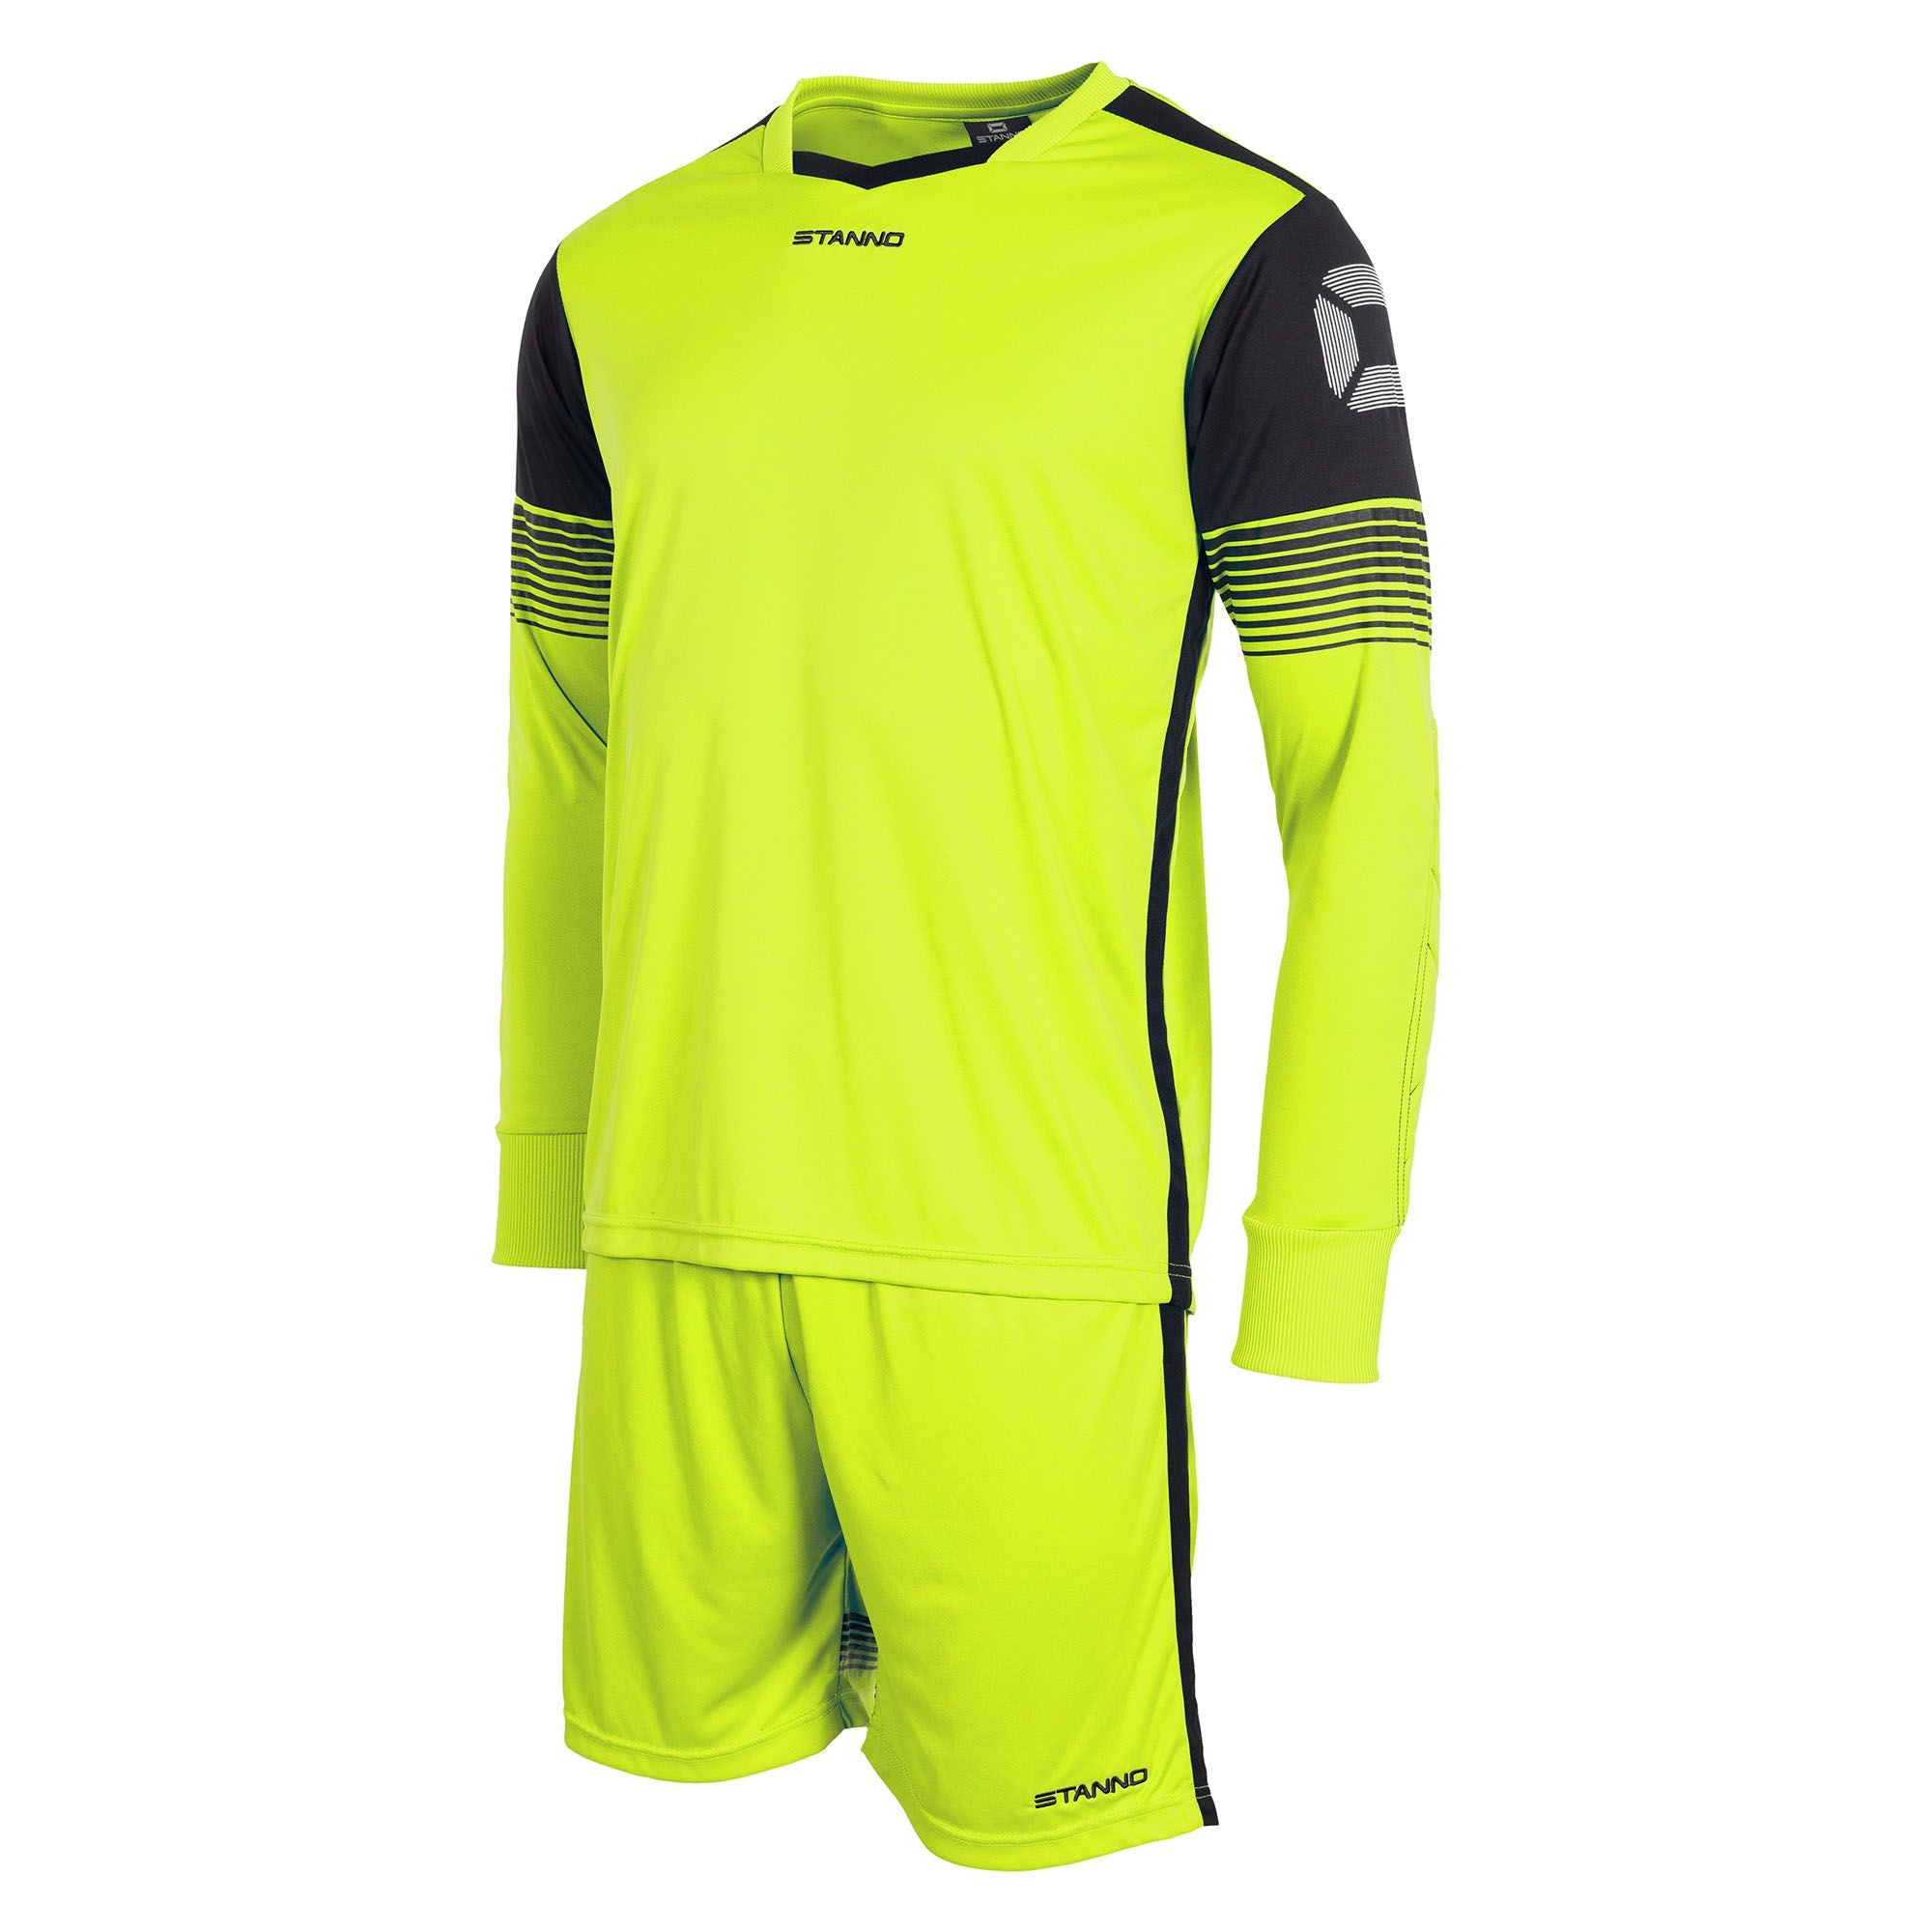 neon yellow Stanno Nitro goalkeeper set of long sleeved shirt and shorts. Black panel on top of arms containing stadium logo.